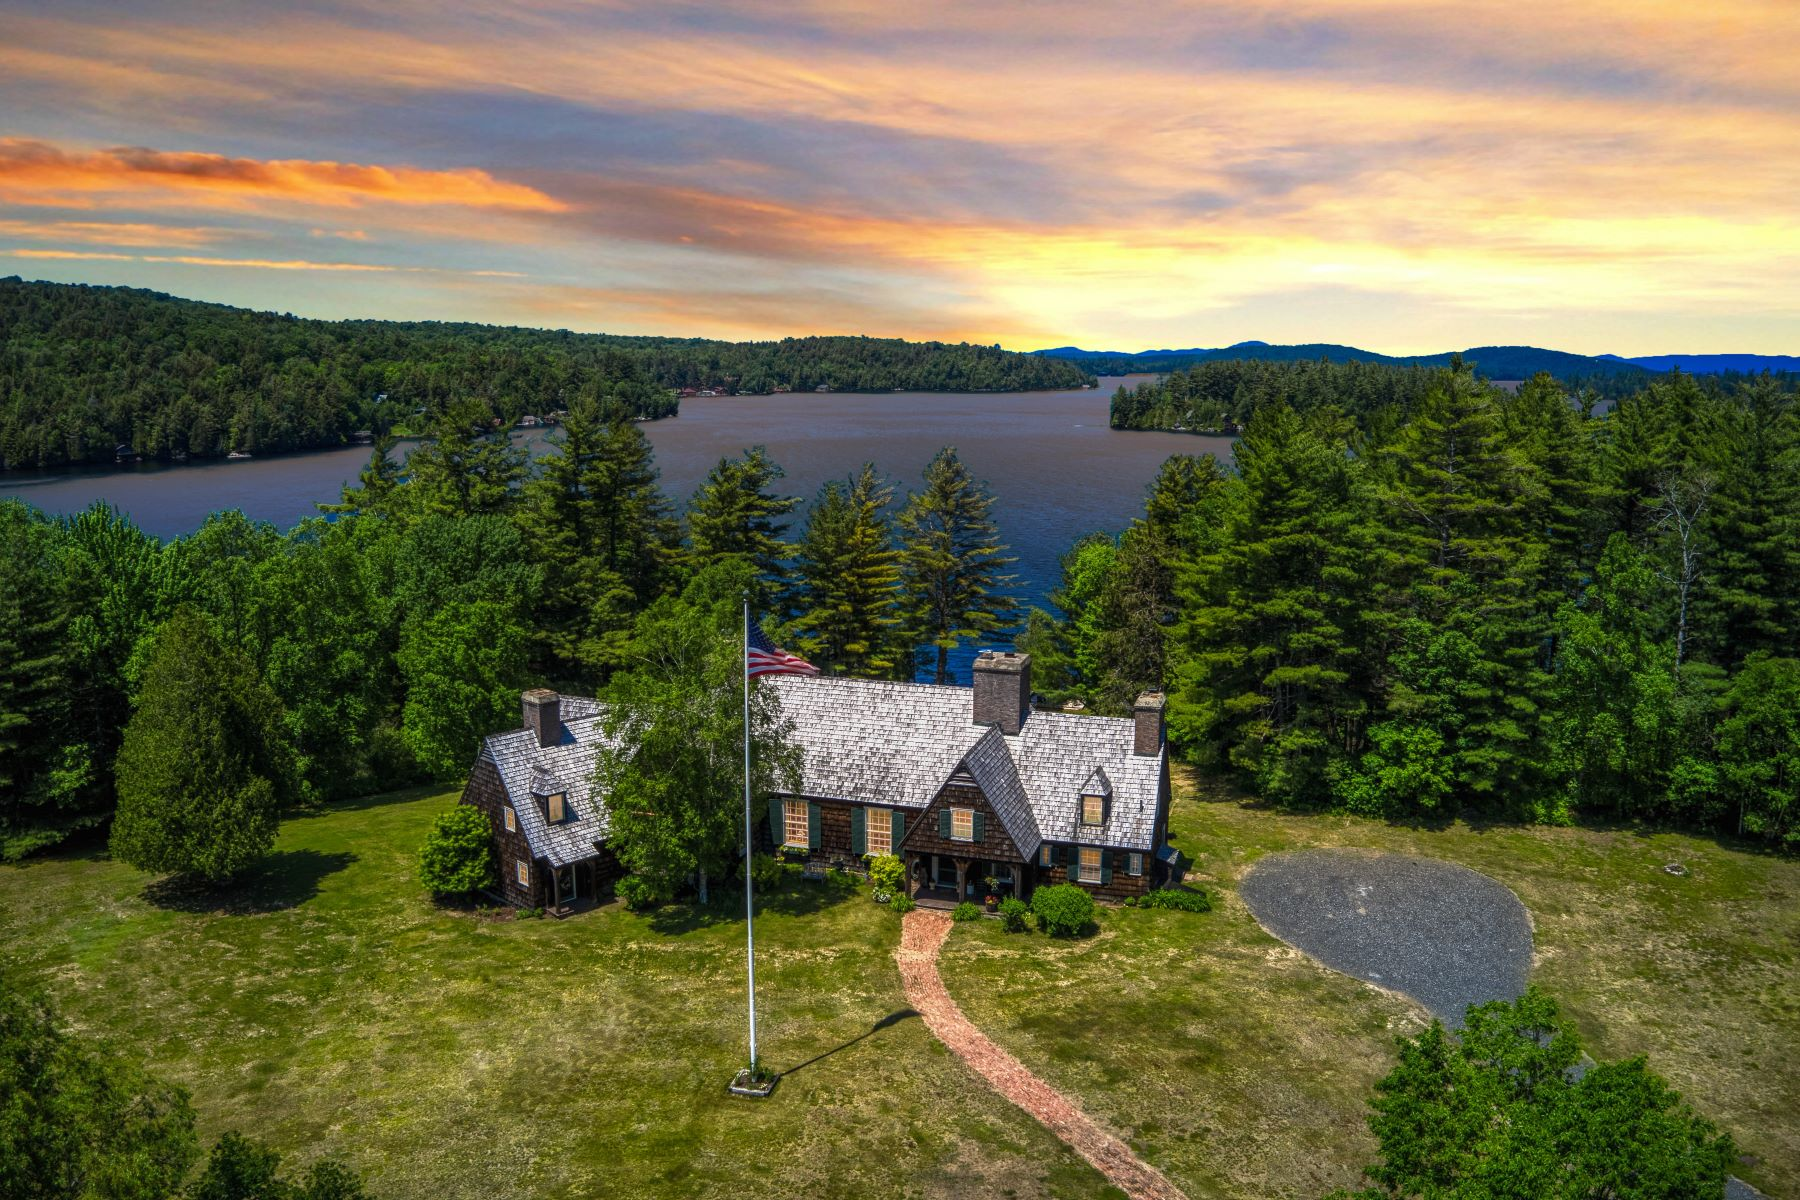 Single Family Homes for Sale at Camp Swenson on Saranac Lake 650 Indian Carry Tupper Lake, New York 12986 United States